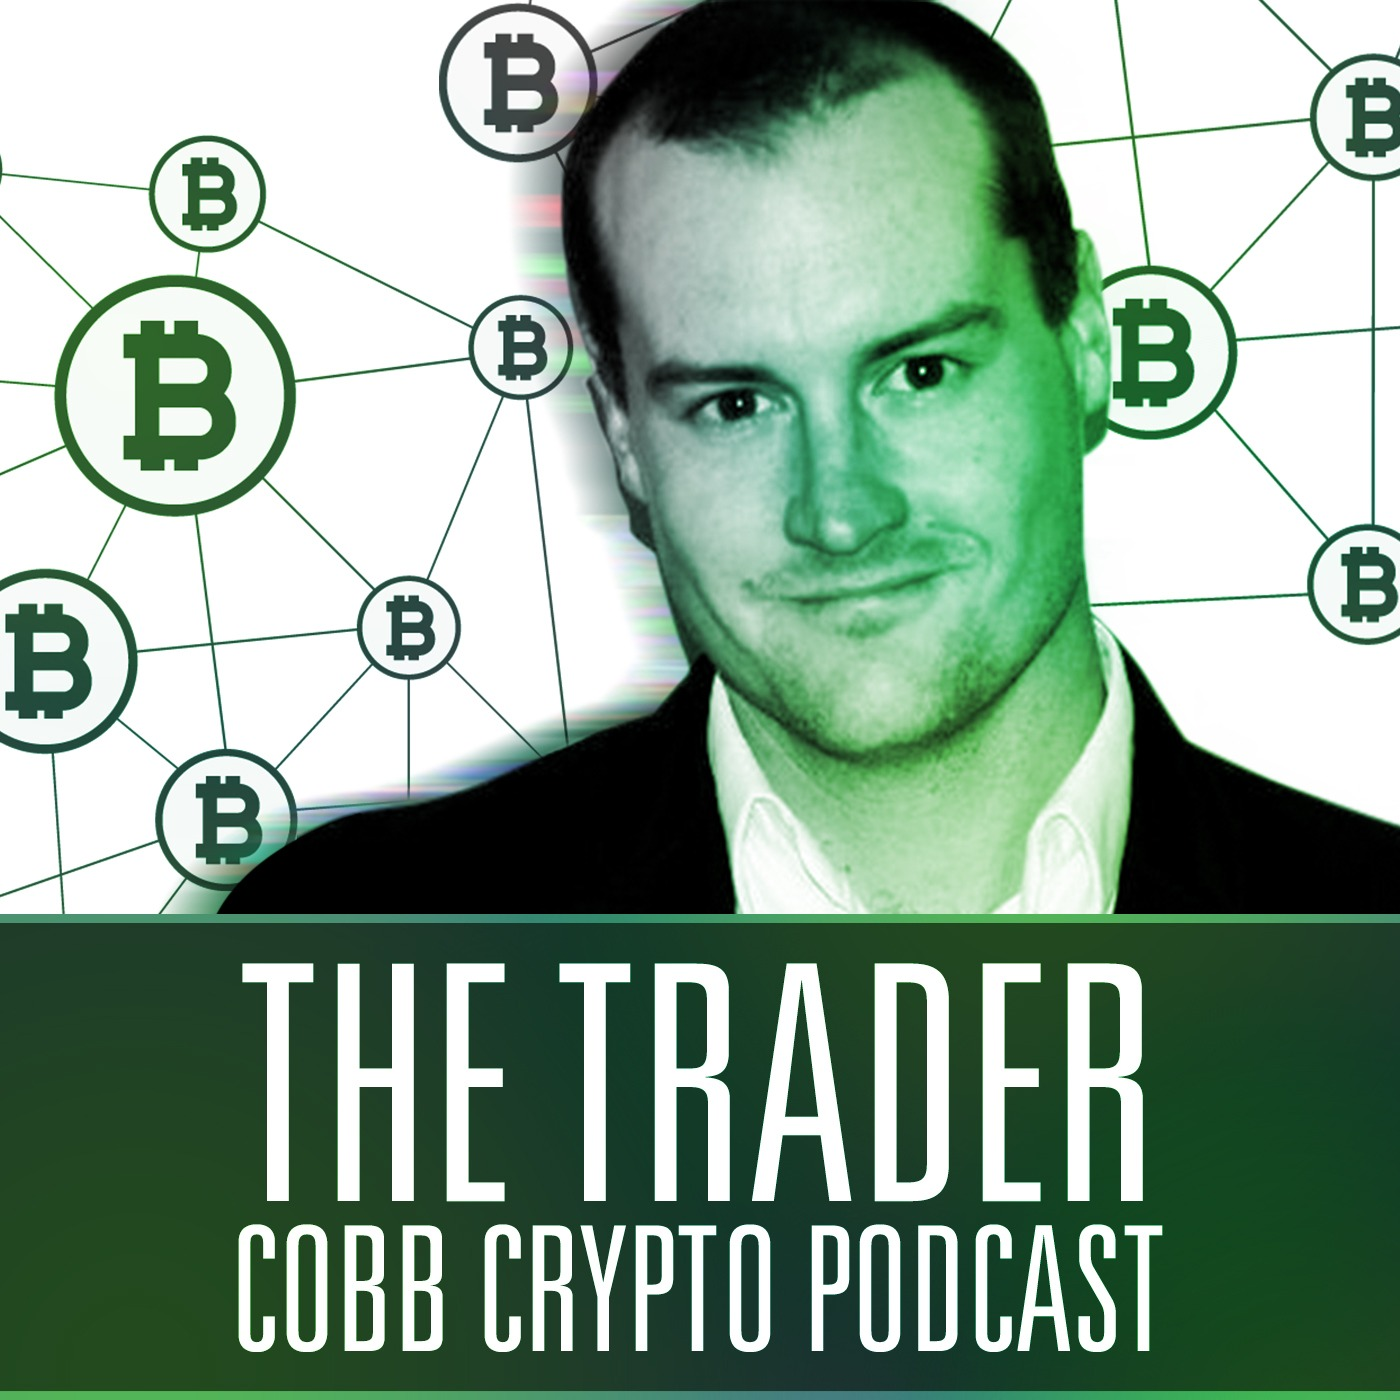 Trader Cobb Crypto Podcast - Who I Surround myself with